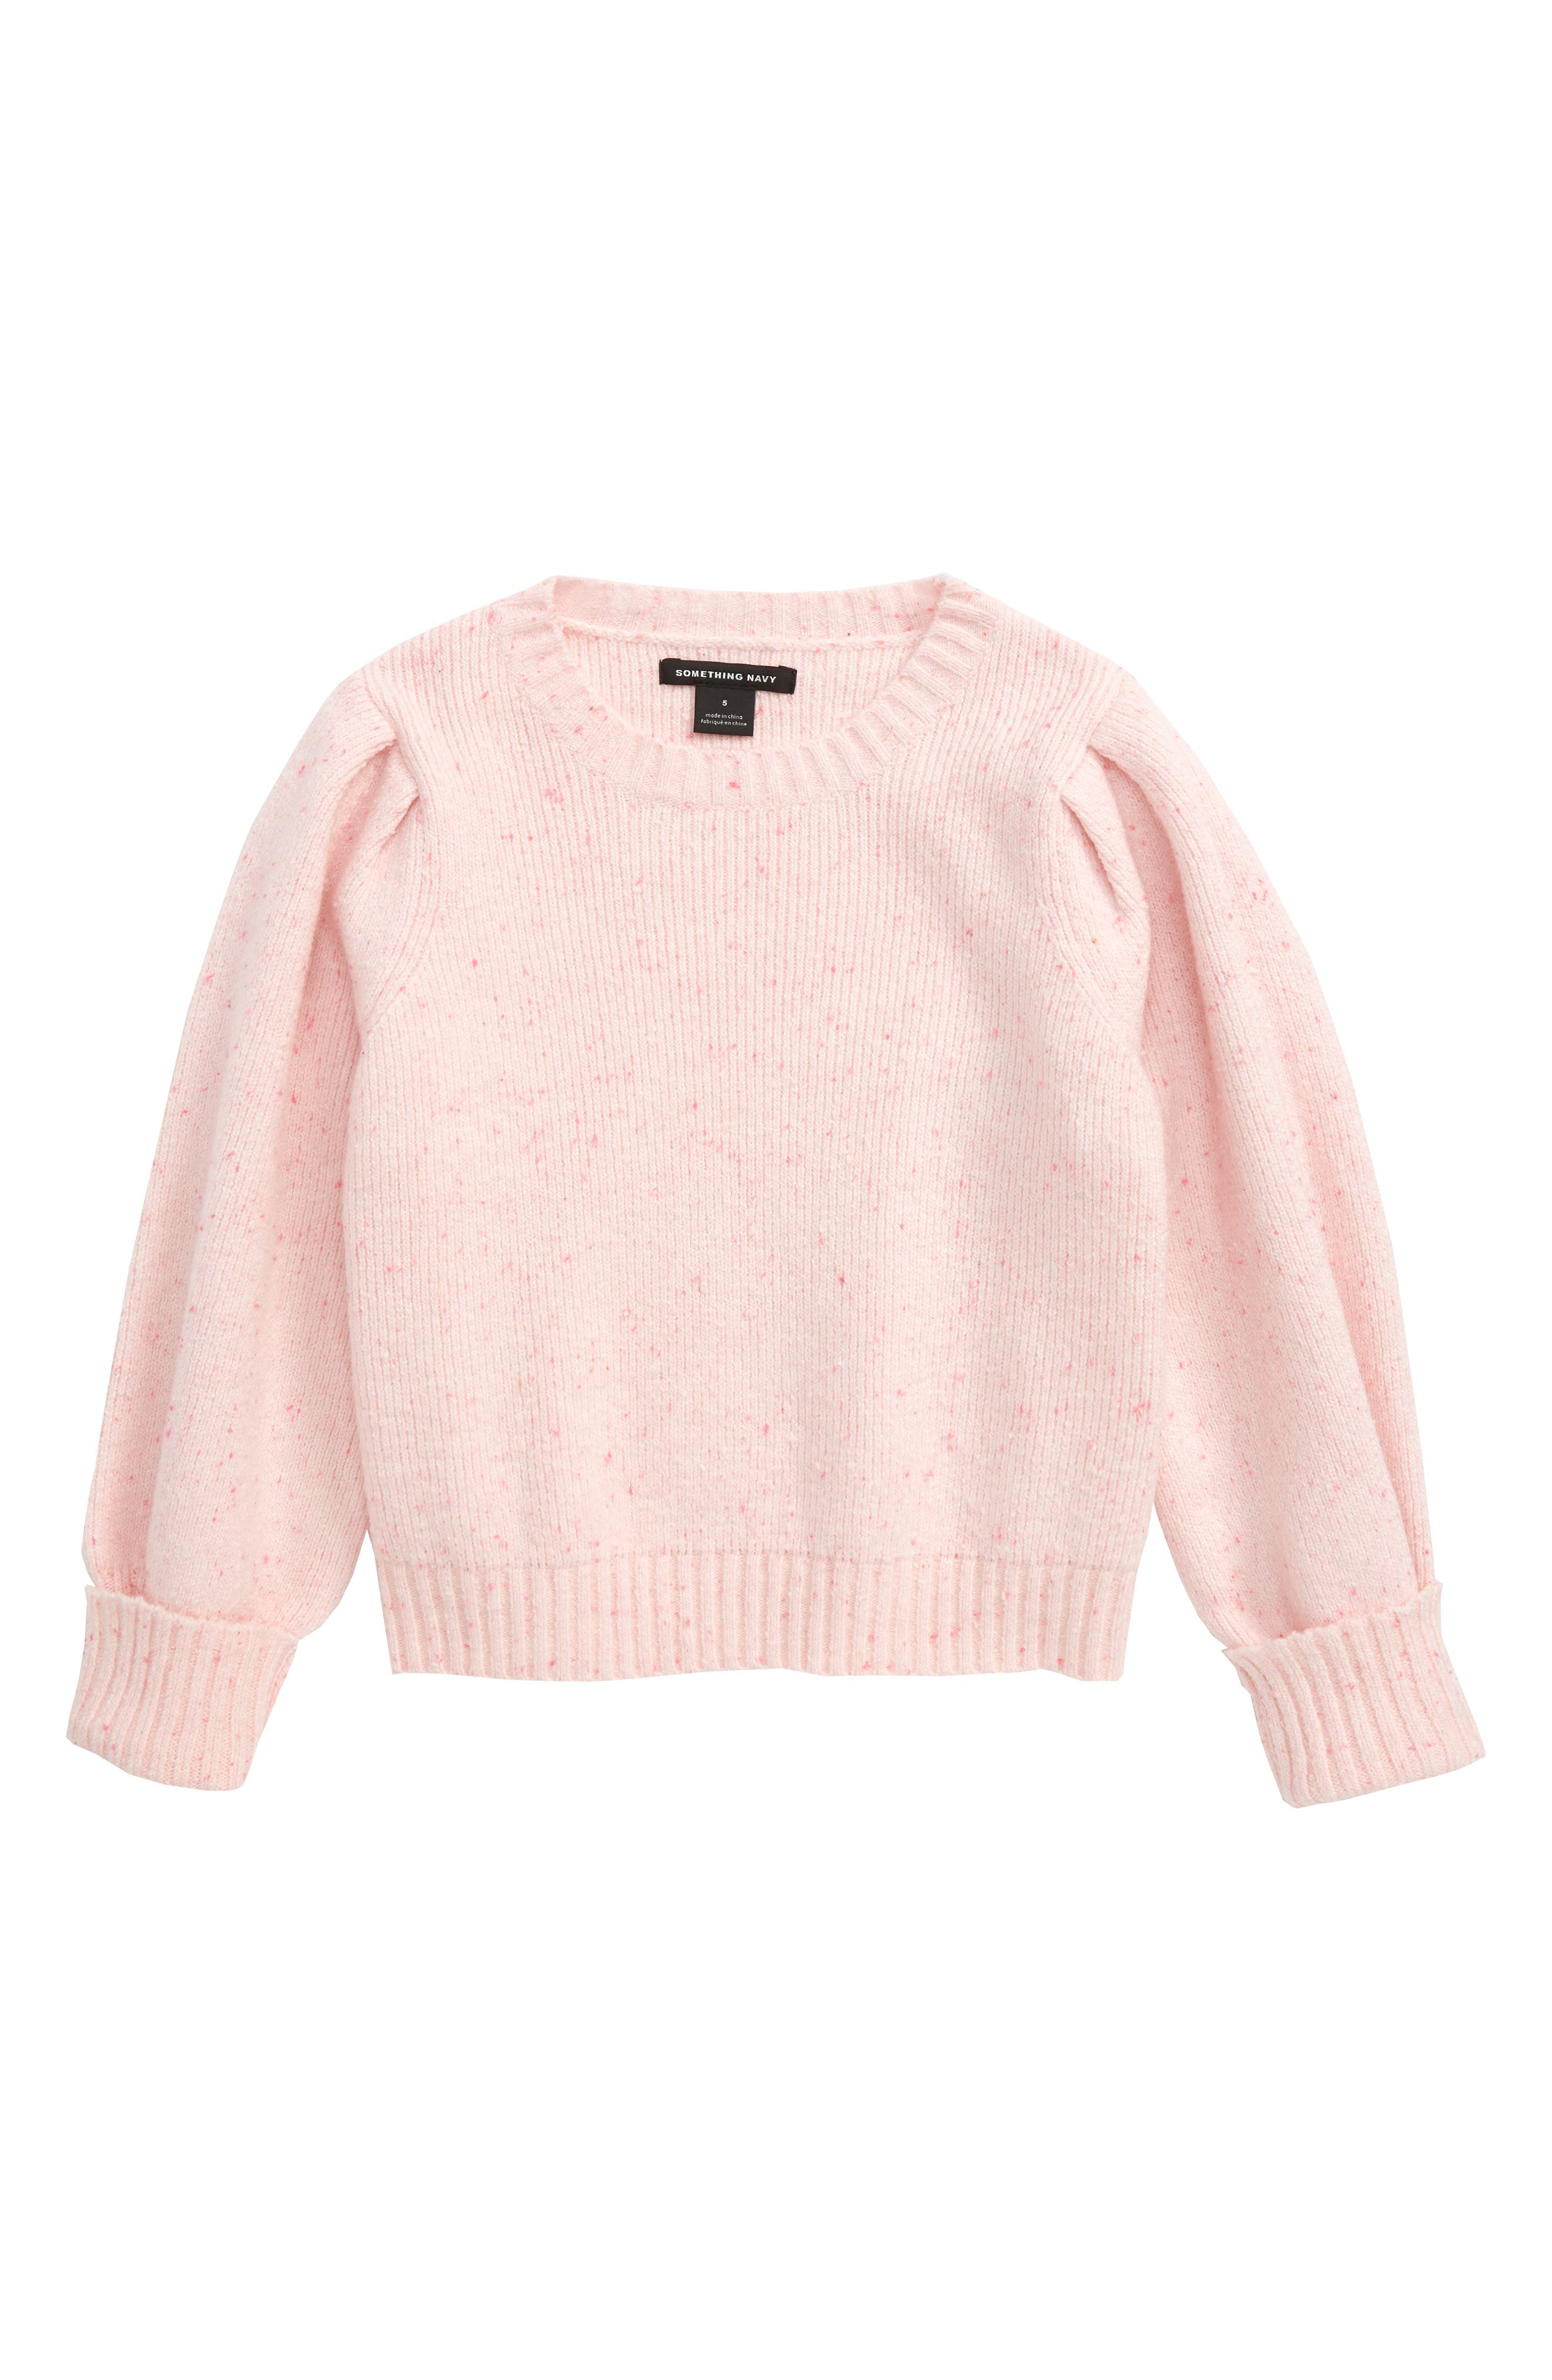 Girls Something Navy Puff Sleeve Sweater Size 6  Pink (Toddler Girls Little Girls  Big Girls) (Nordstrom Exclusive)